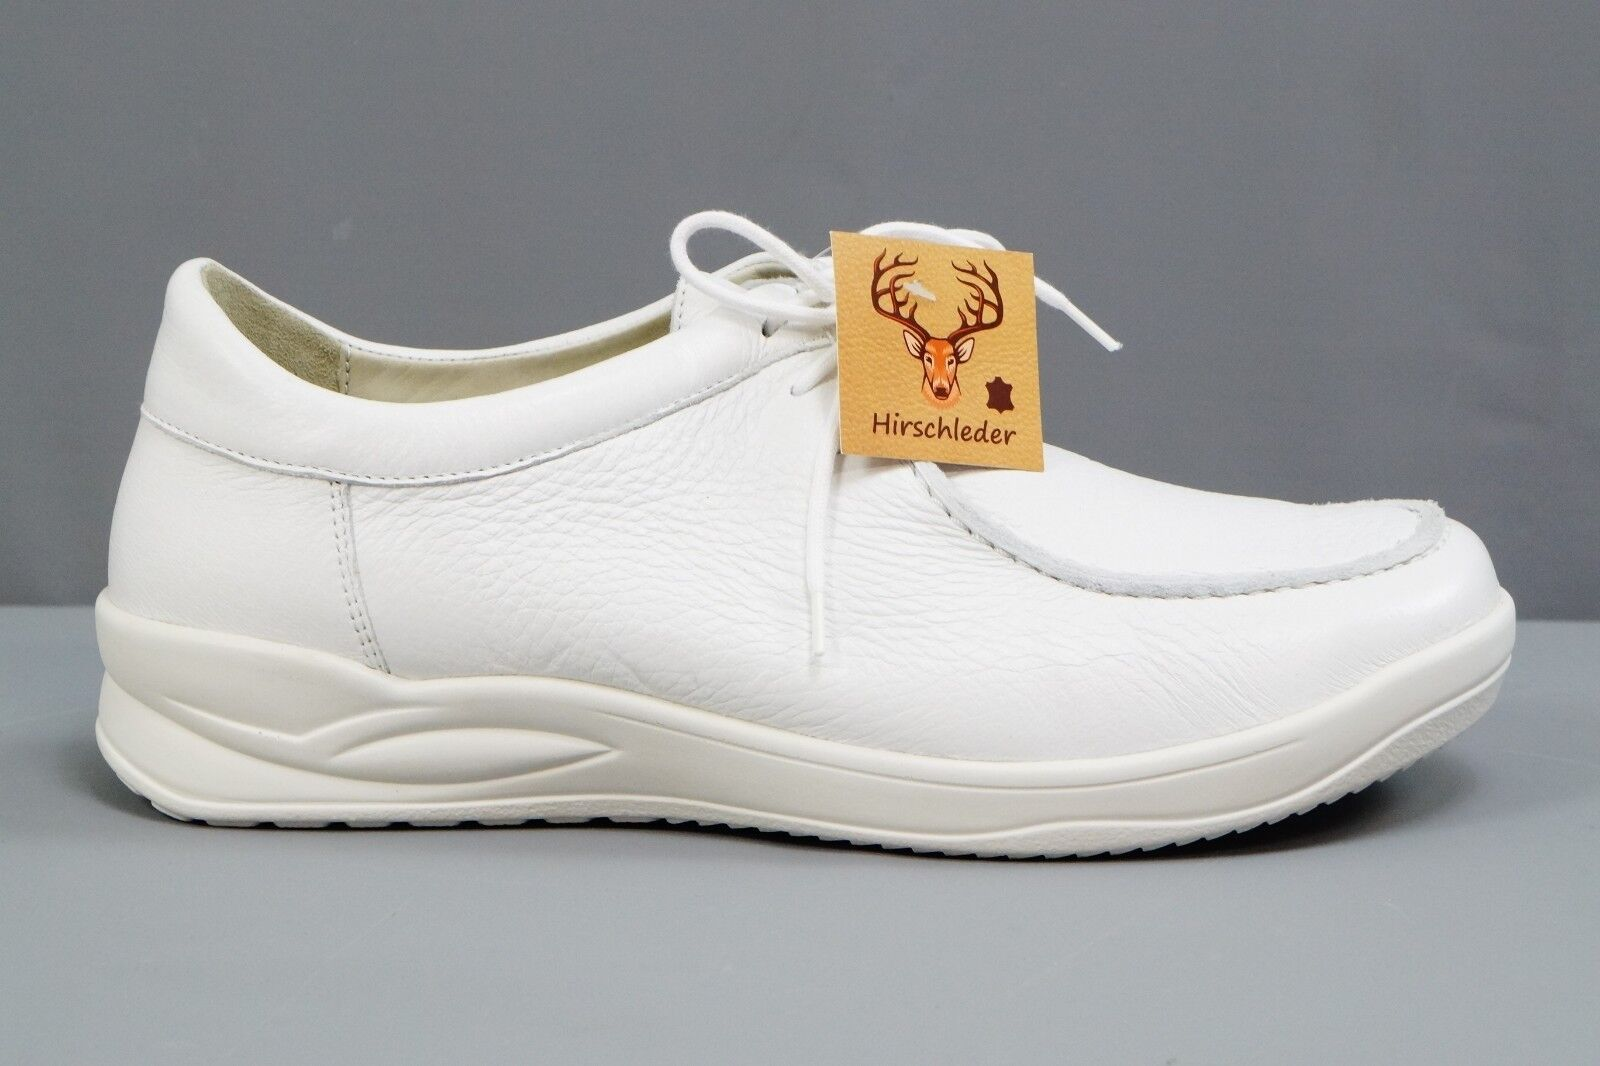 Ströber Mens Loafer Lace Up zapatos because semi-Stag blanco Talla 40,5 NEW  354